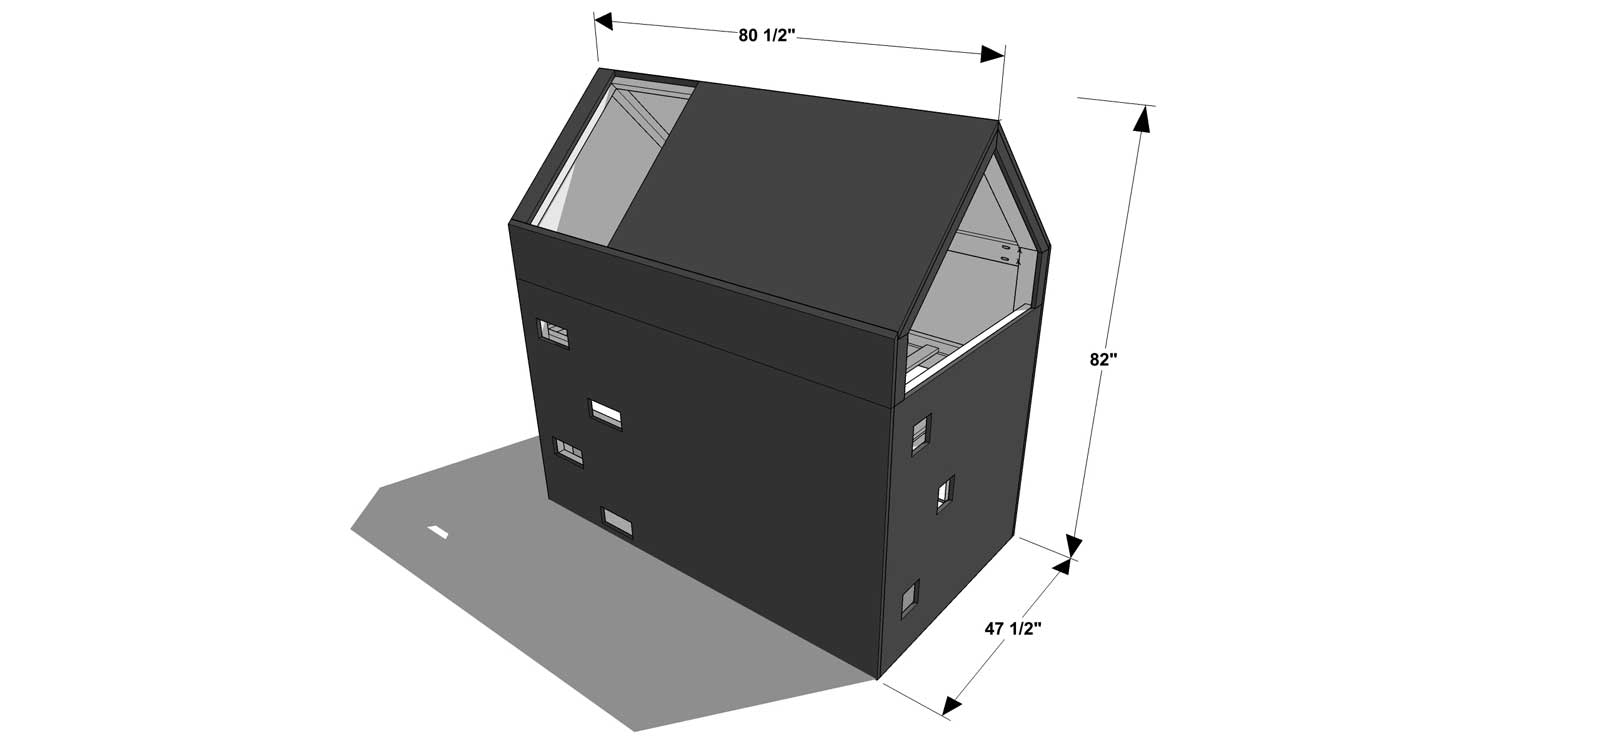 Perfect The Design Confidential DIY Furniture Plans for How to Build a Modern Lake House Bunk Bed